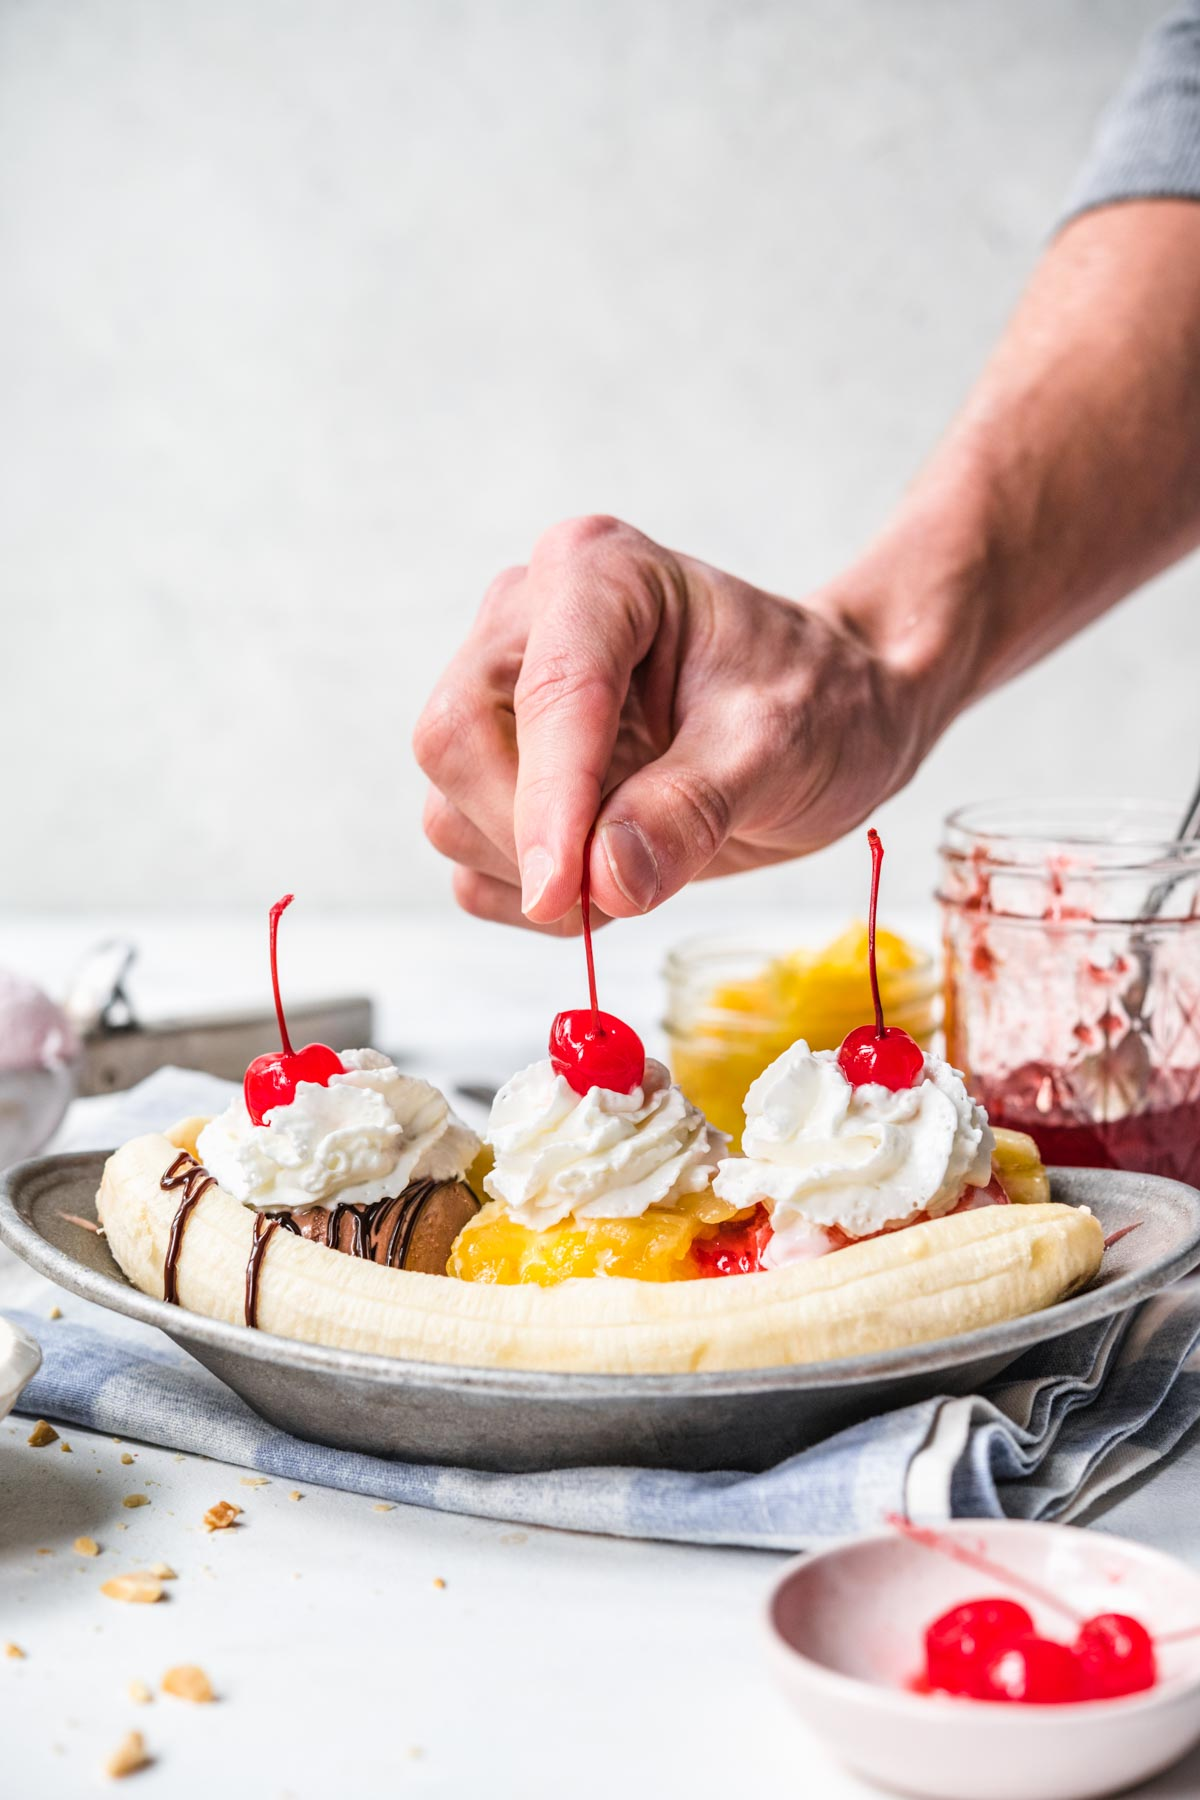 Banana Split on plate with chocolate, pineapple, and strawberry topping